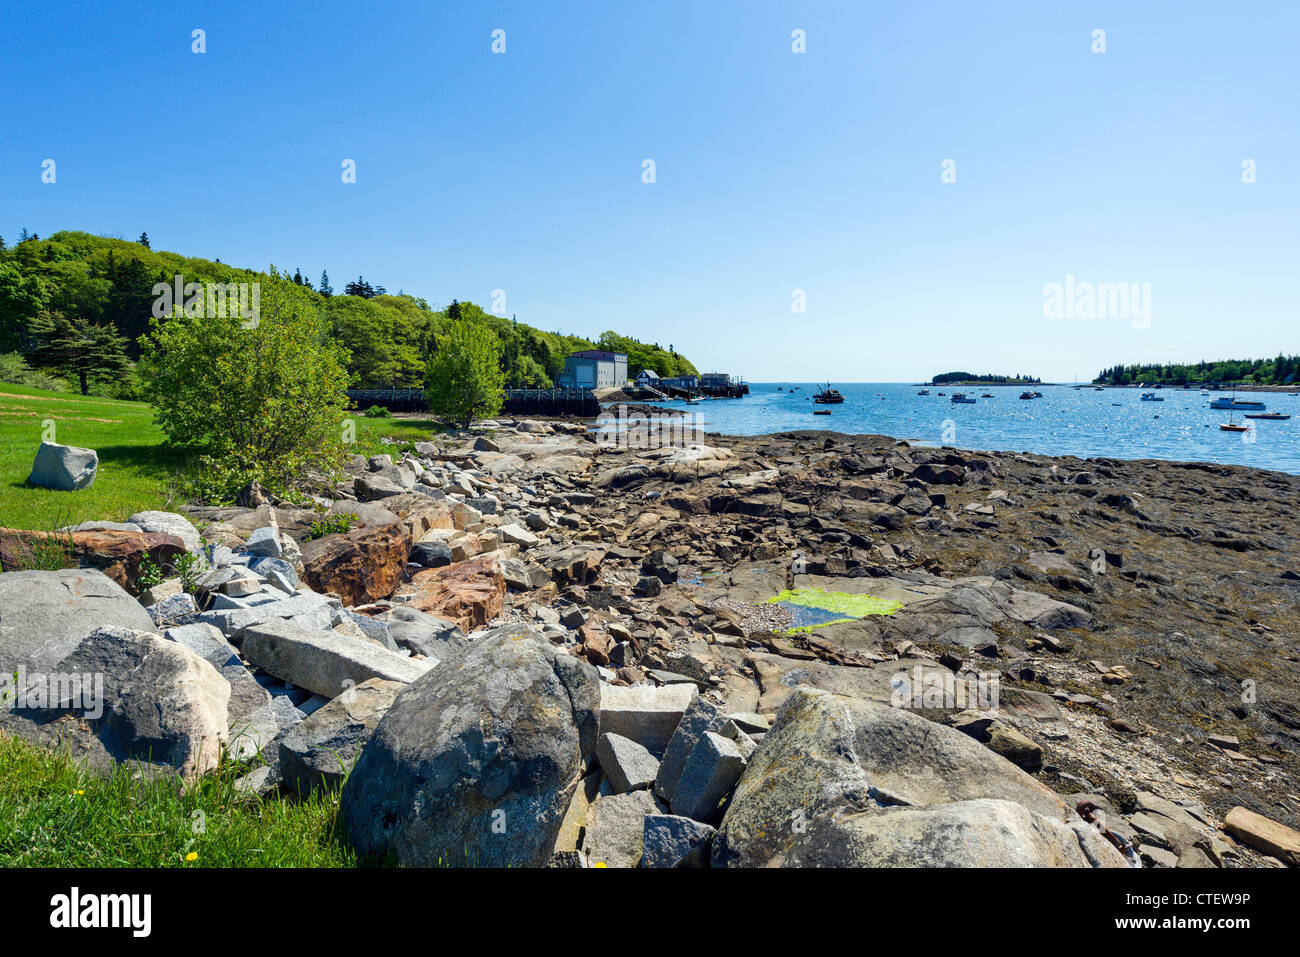 Coast in the village of Tenants Harbor on St George Peninsula, Knox County, Maine, USA - Stock Image